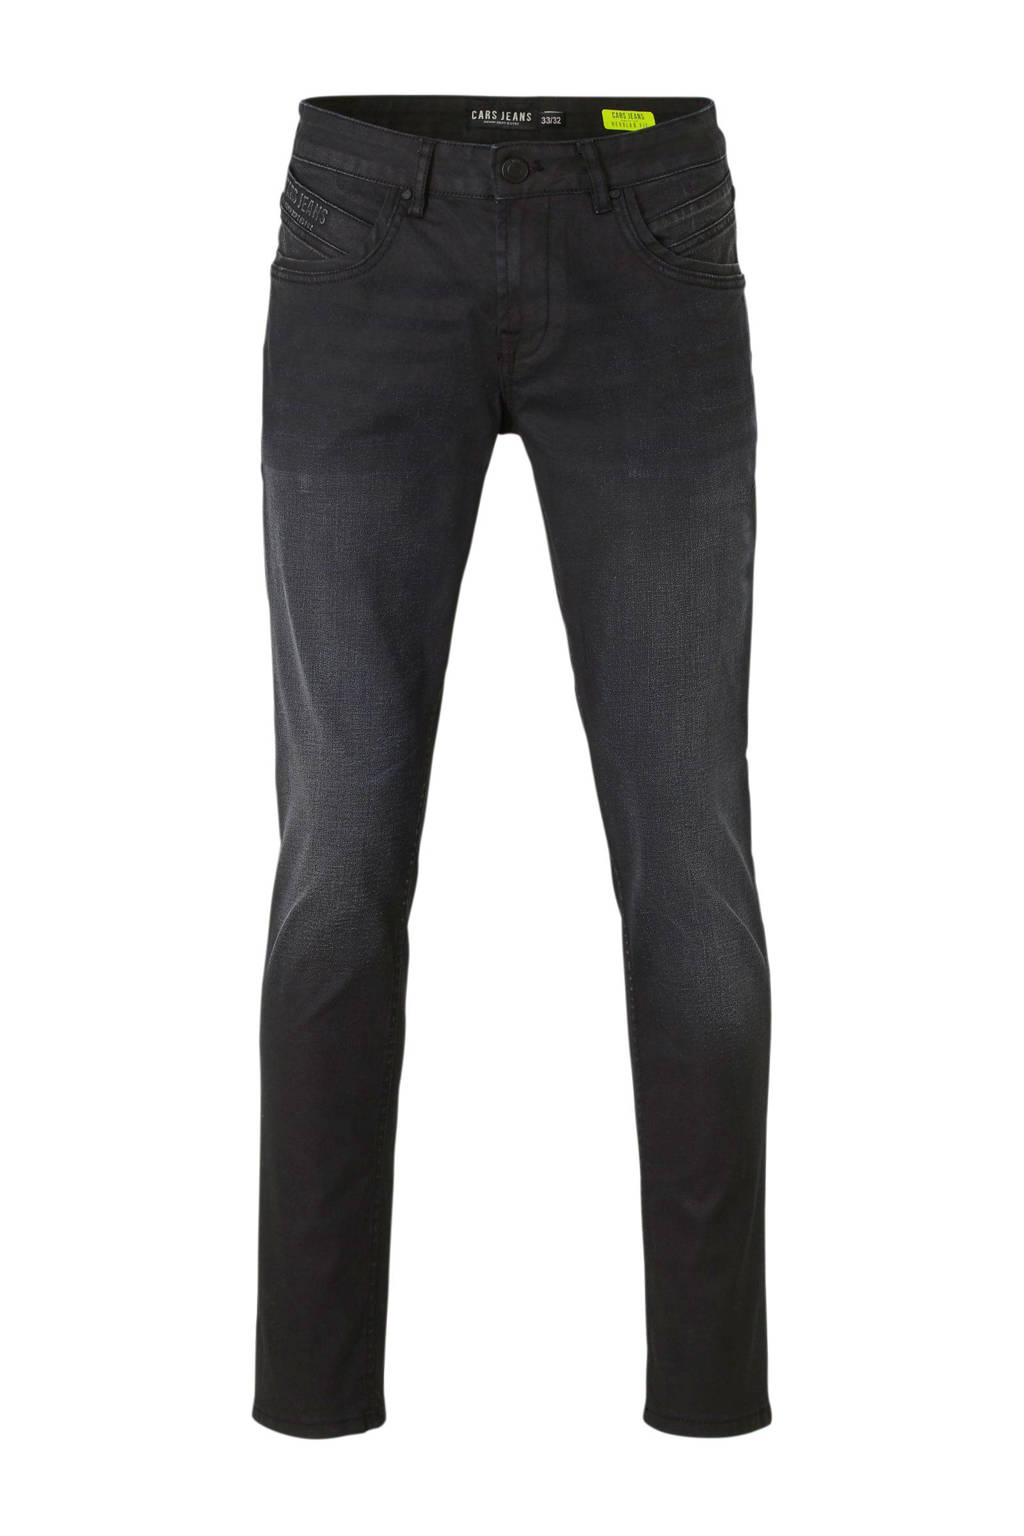 Cars regular fit jeans Henlow, 21 Black Coated